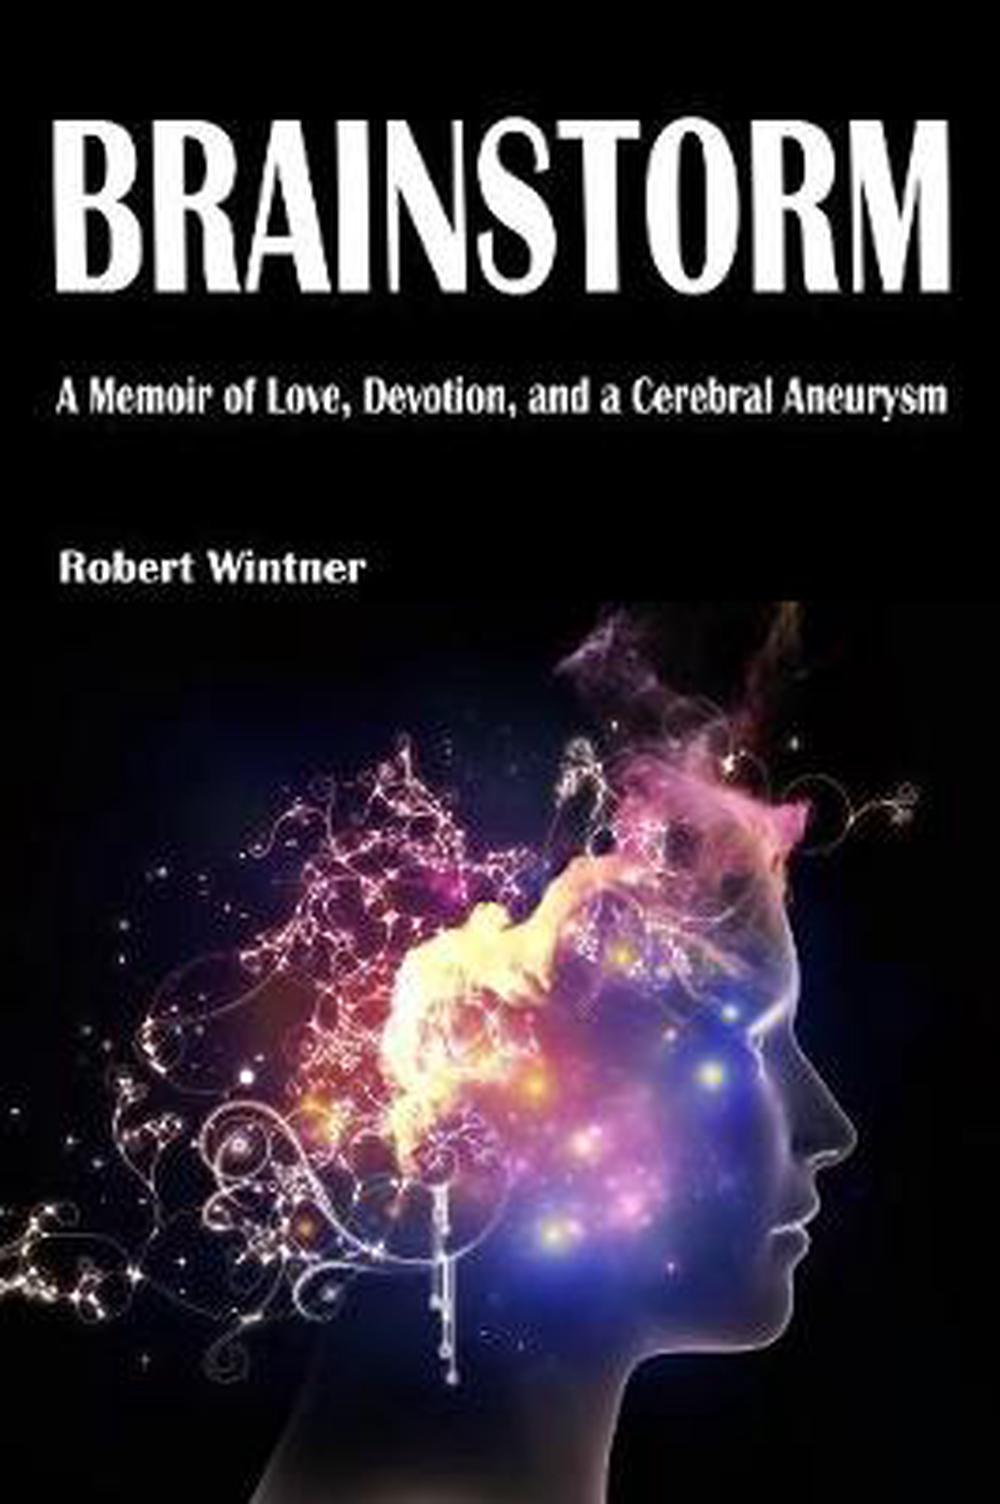 Brainstorm: A Memoir of Love, Devotion, and a Cerebral Aneurysm by Robert Wintne